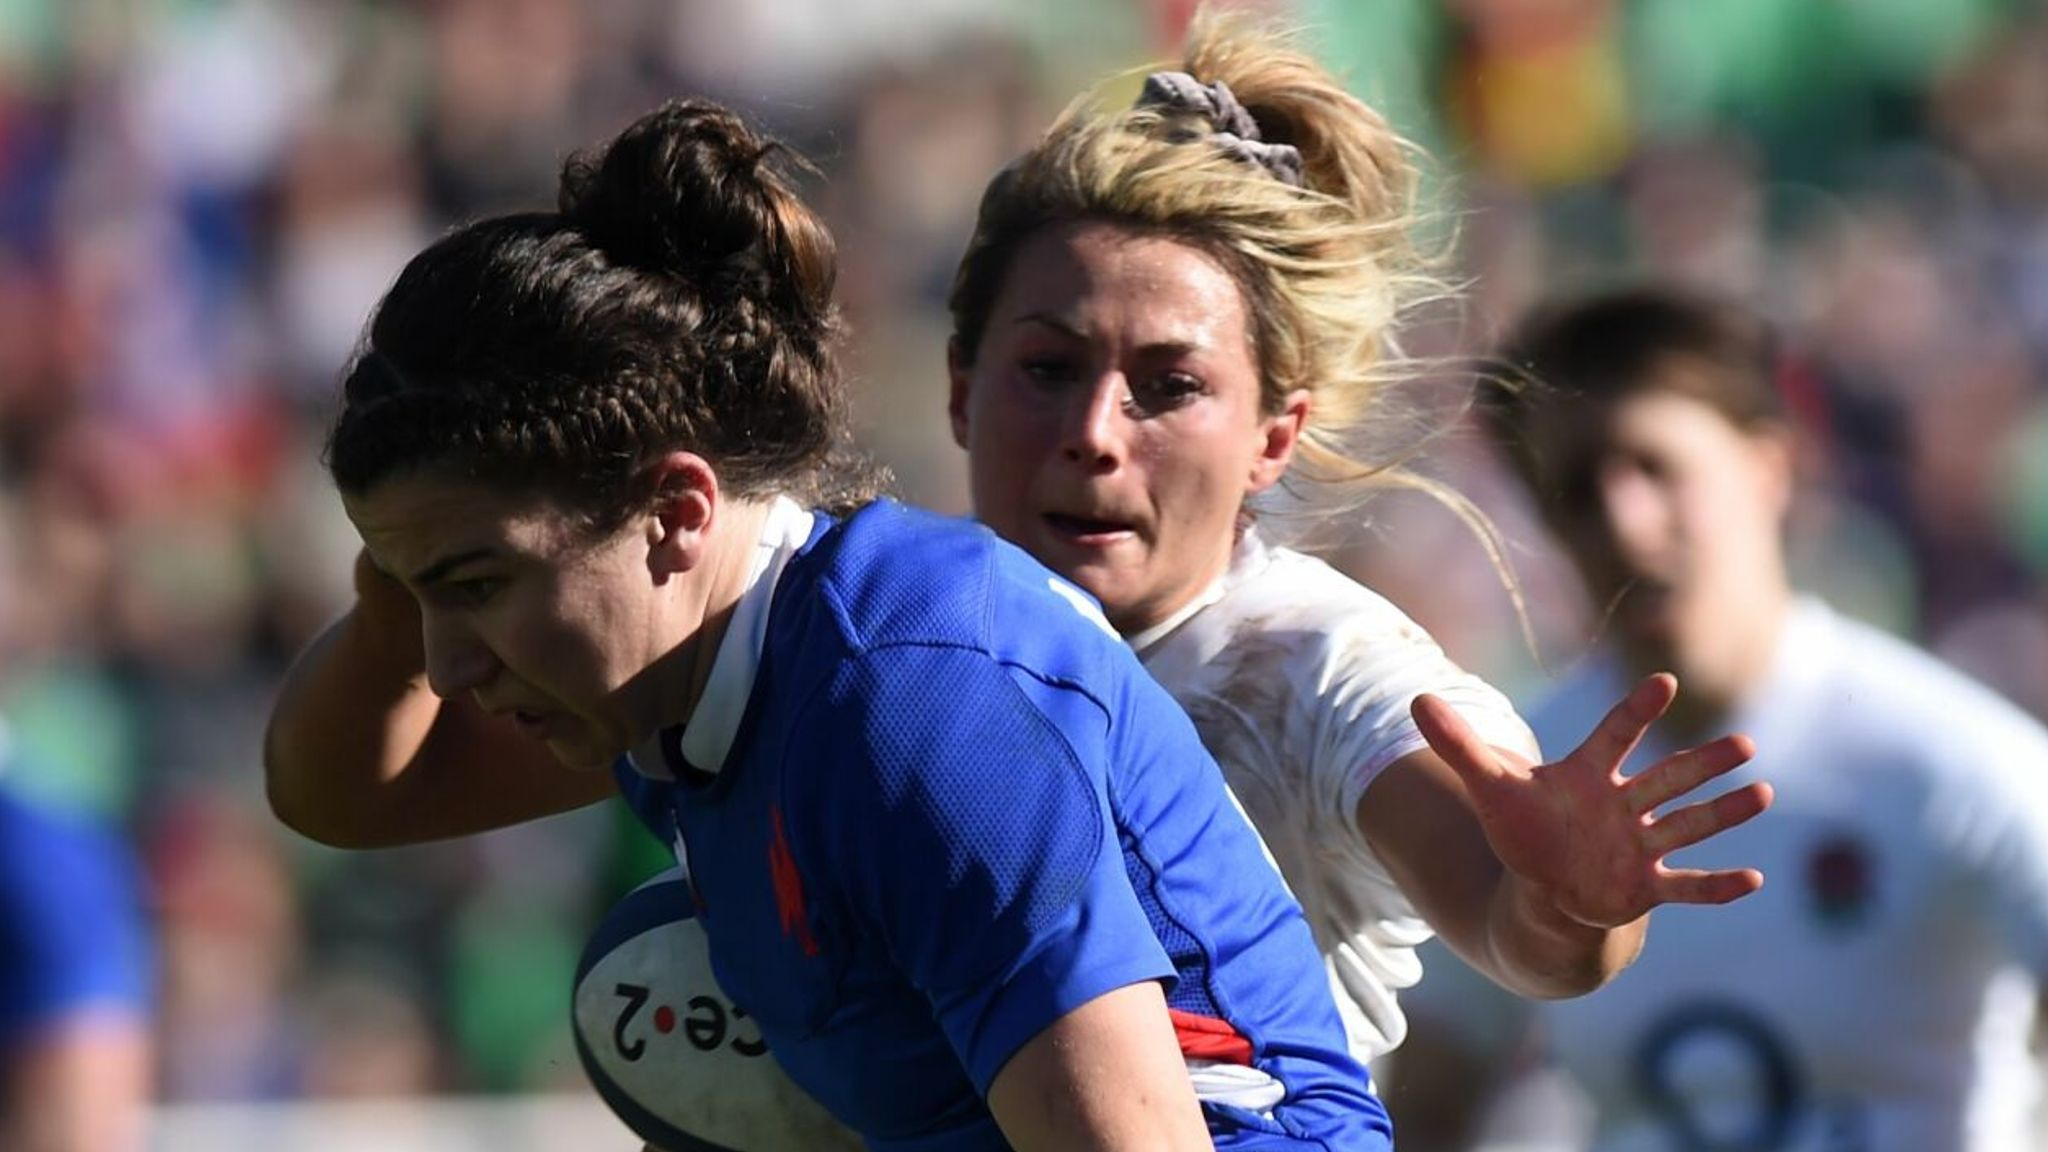 Rugby world cup 2021 new zealand vs france 2nd half betting betting exchange usa legal holidays